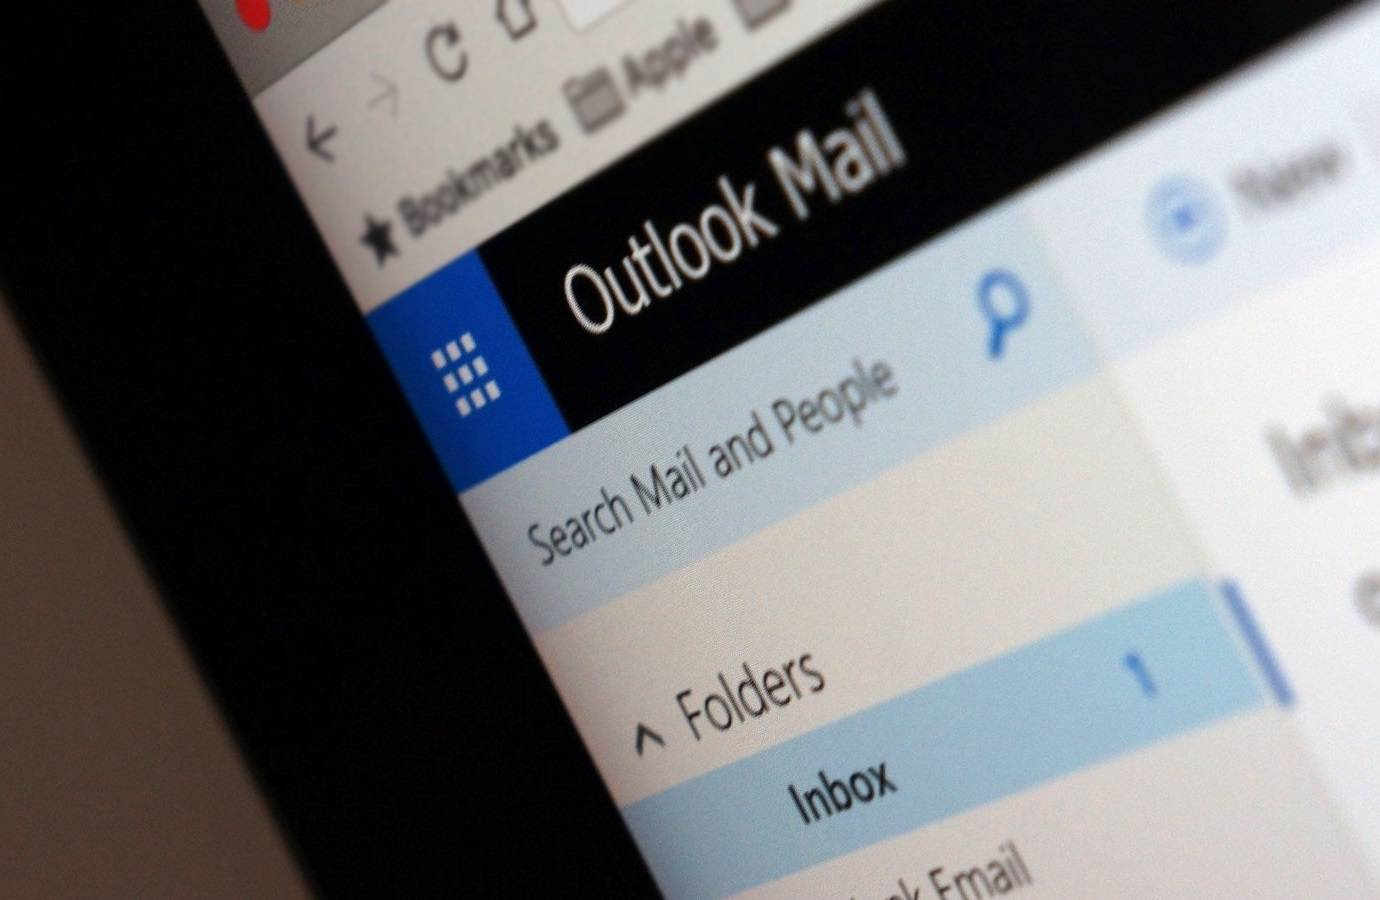 Microsoft reveals hackers accessed some Outlook.com user accounts for months